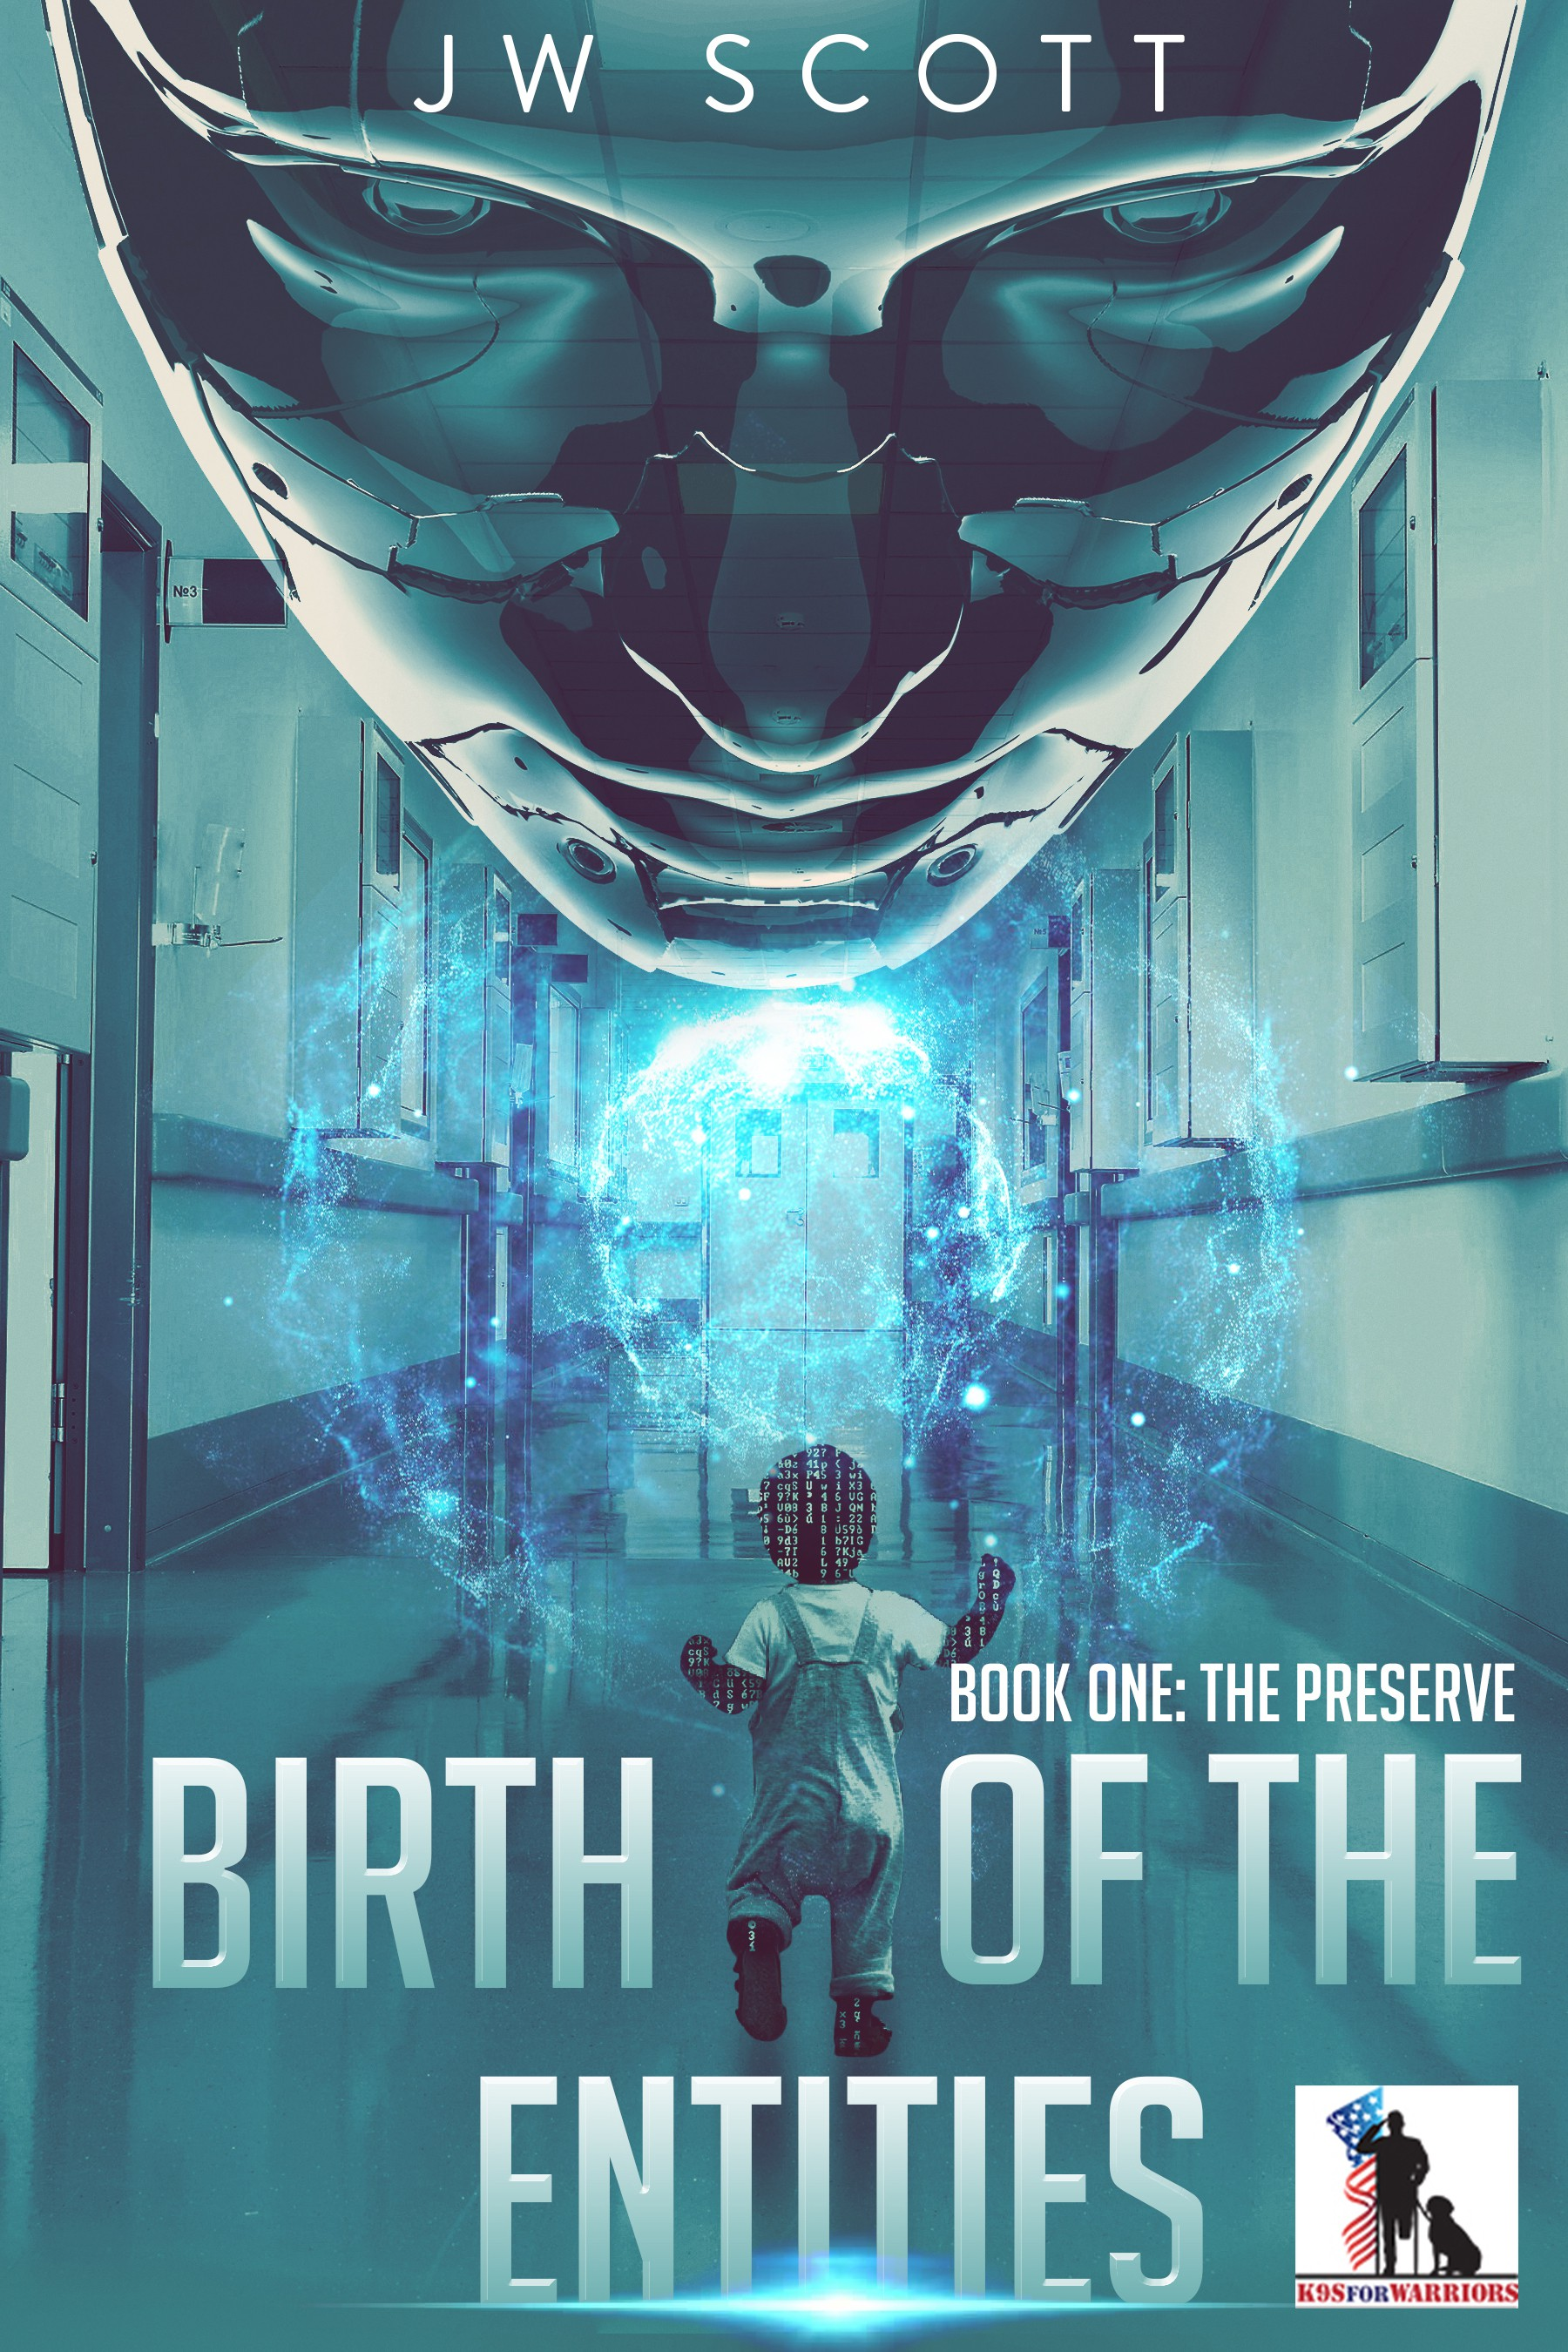 Birth of the Entities